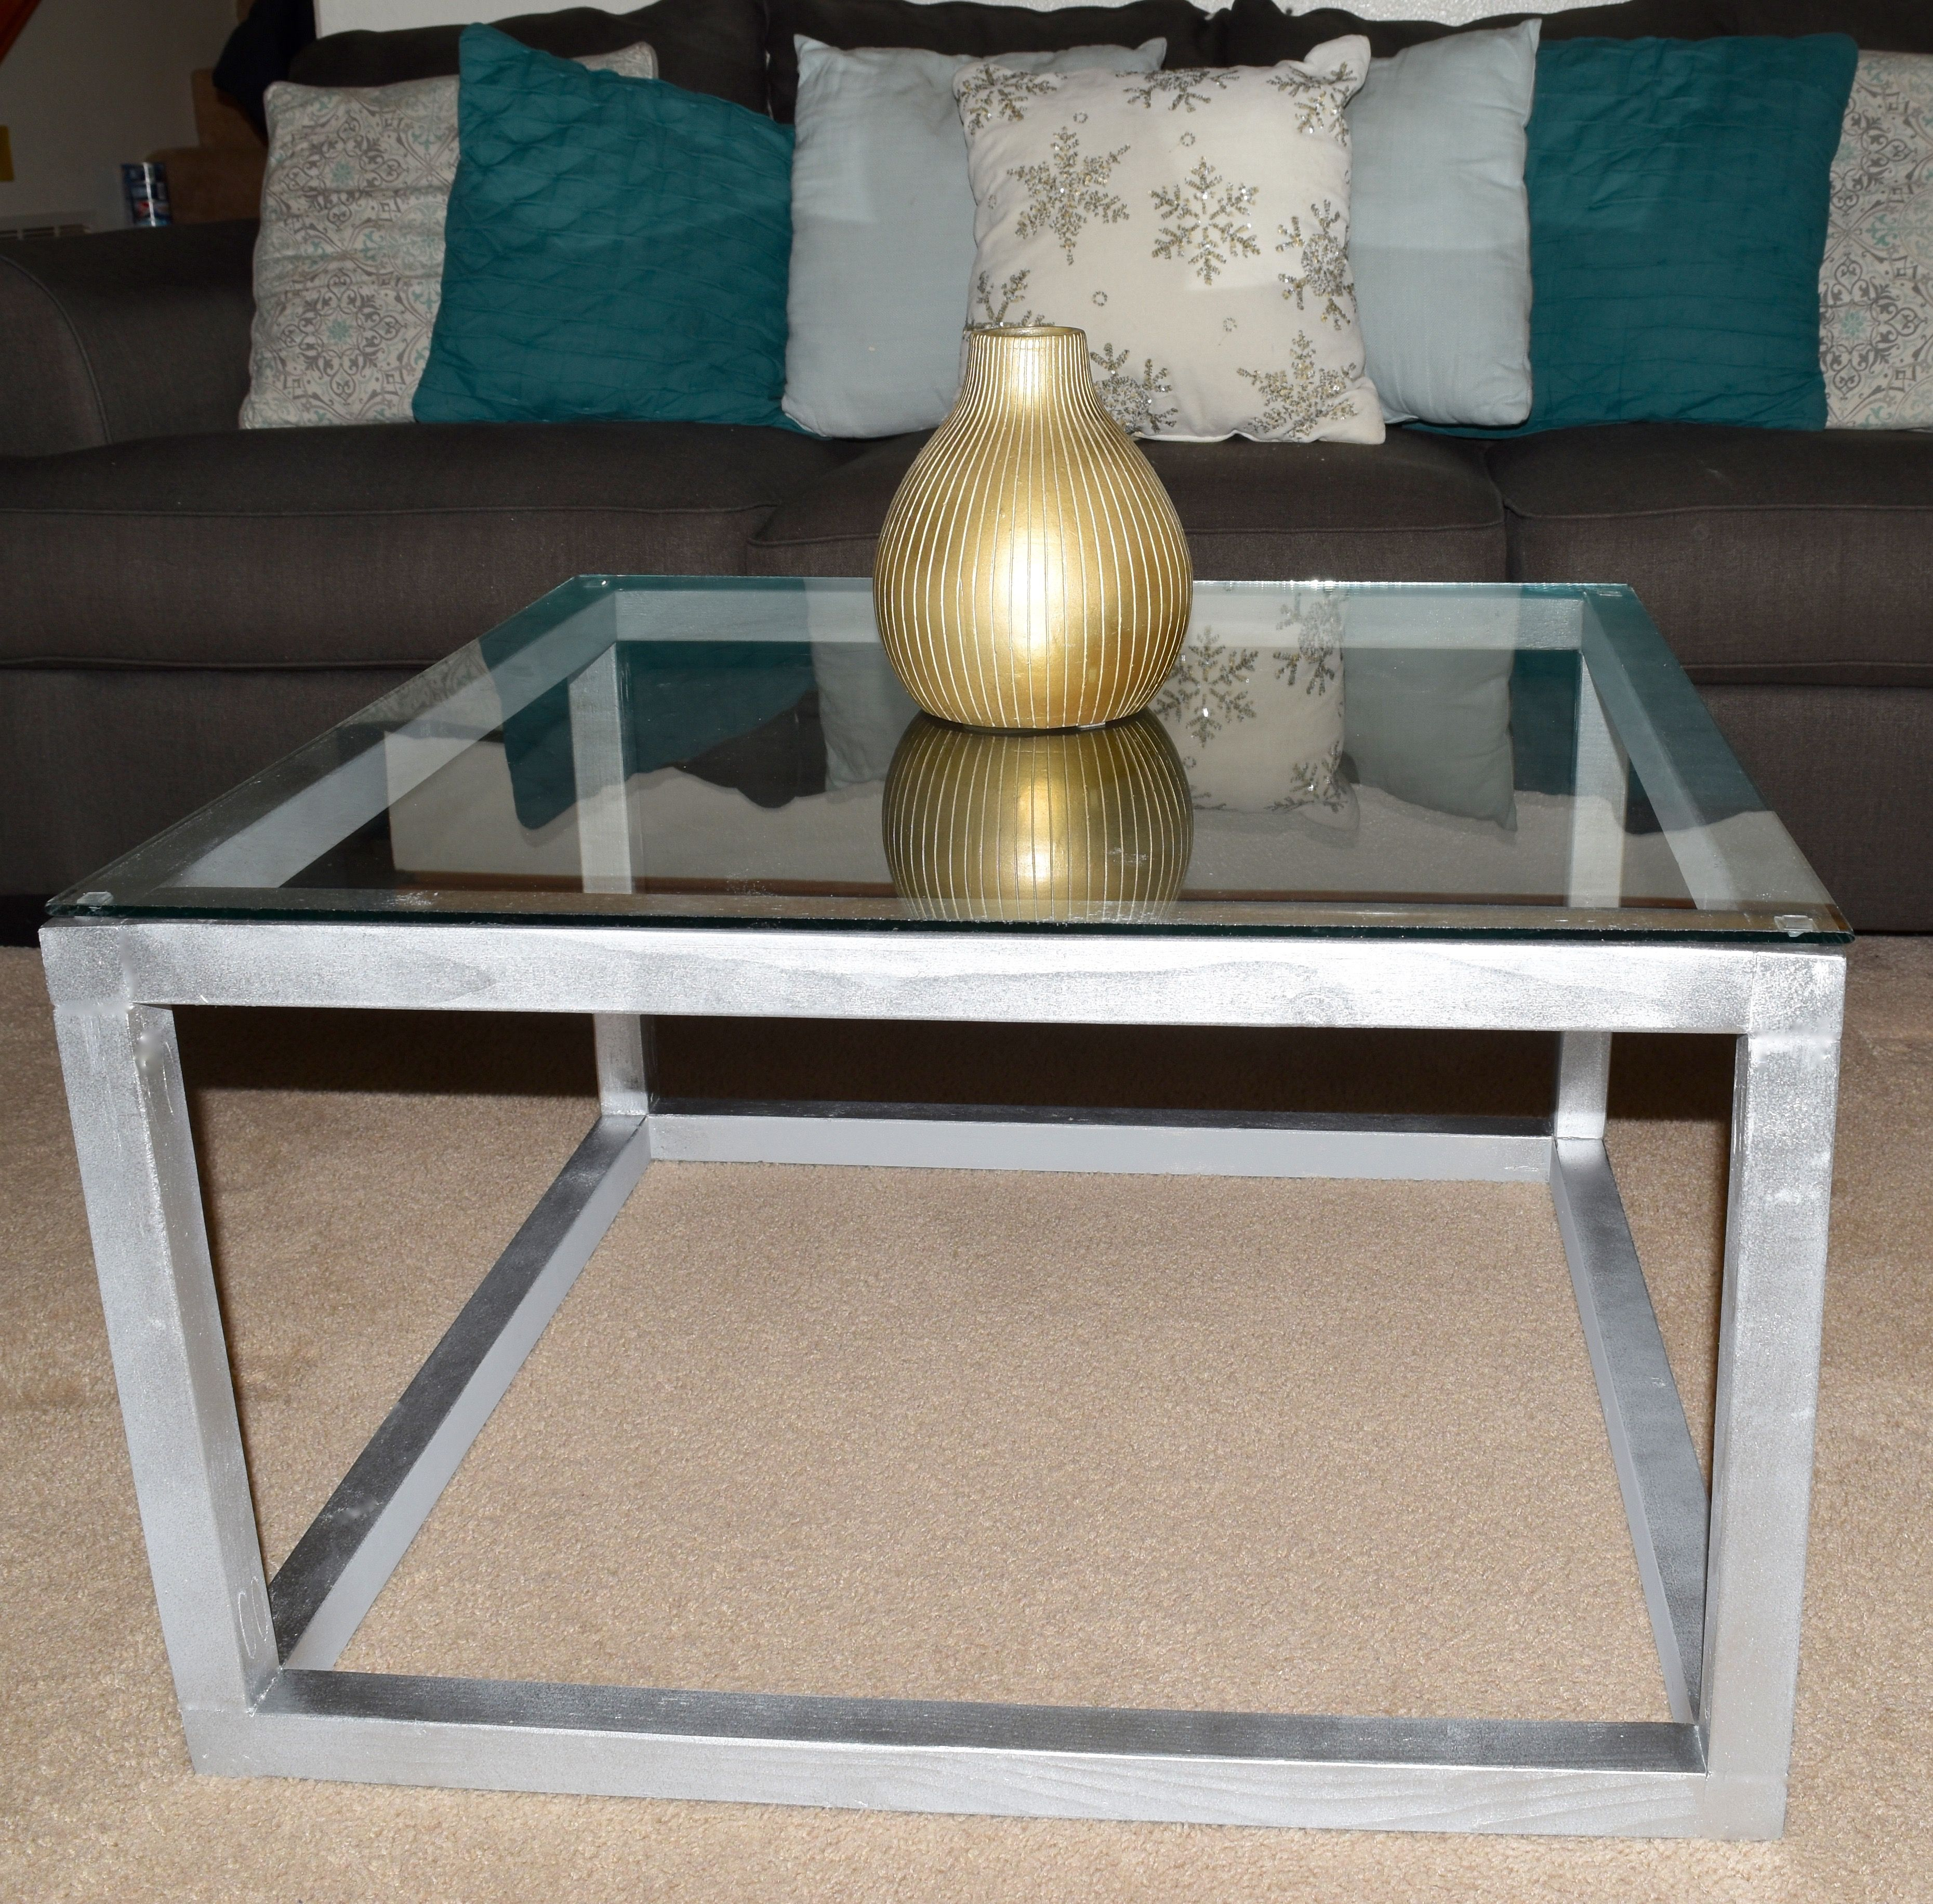 DIY Coffee Table for $8 in Lumber – Find It, Fix It or Build It